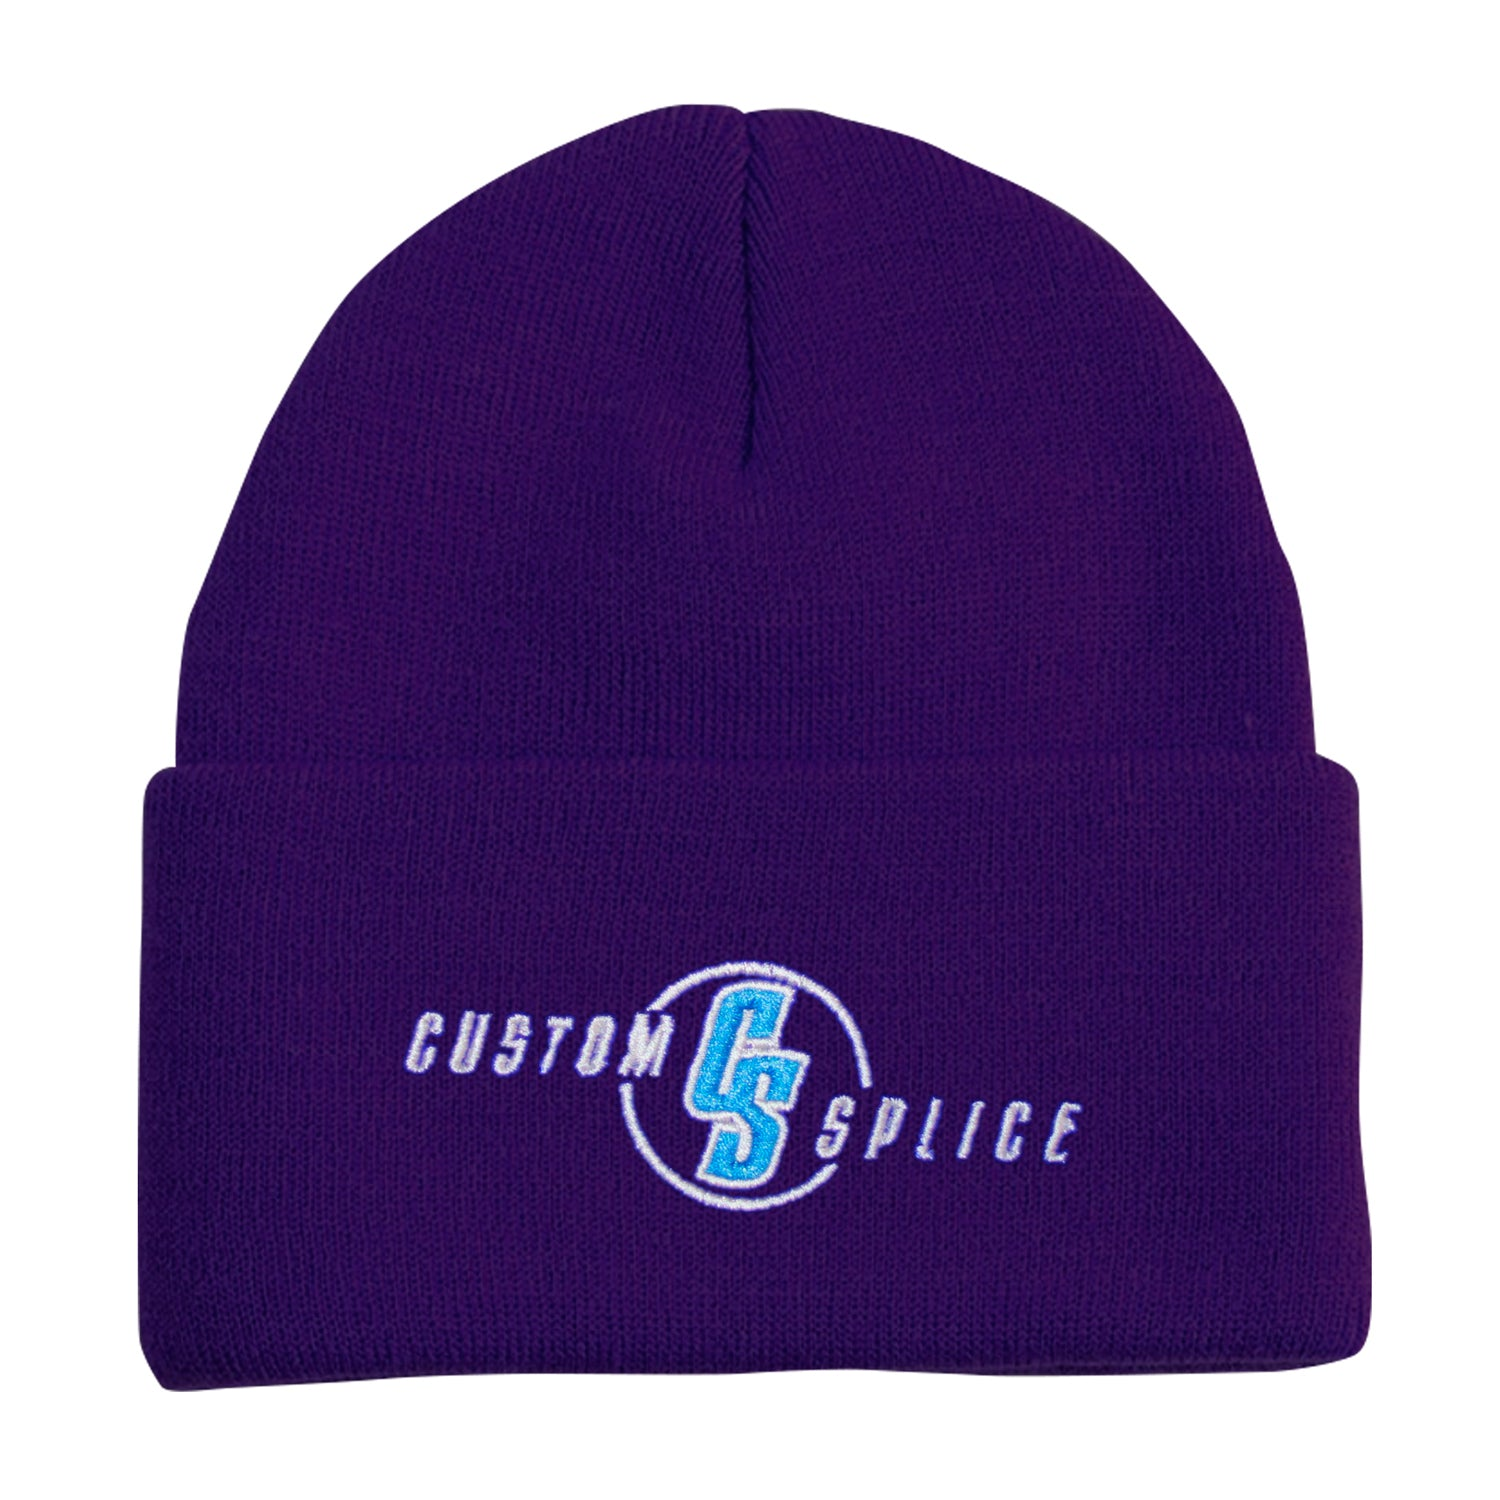 Custom Splice Embroidered Beanie